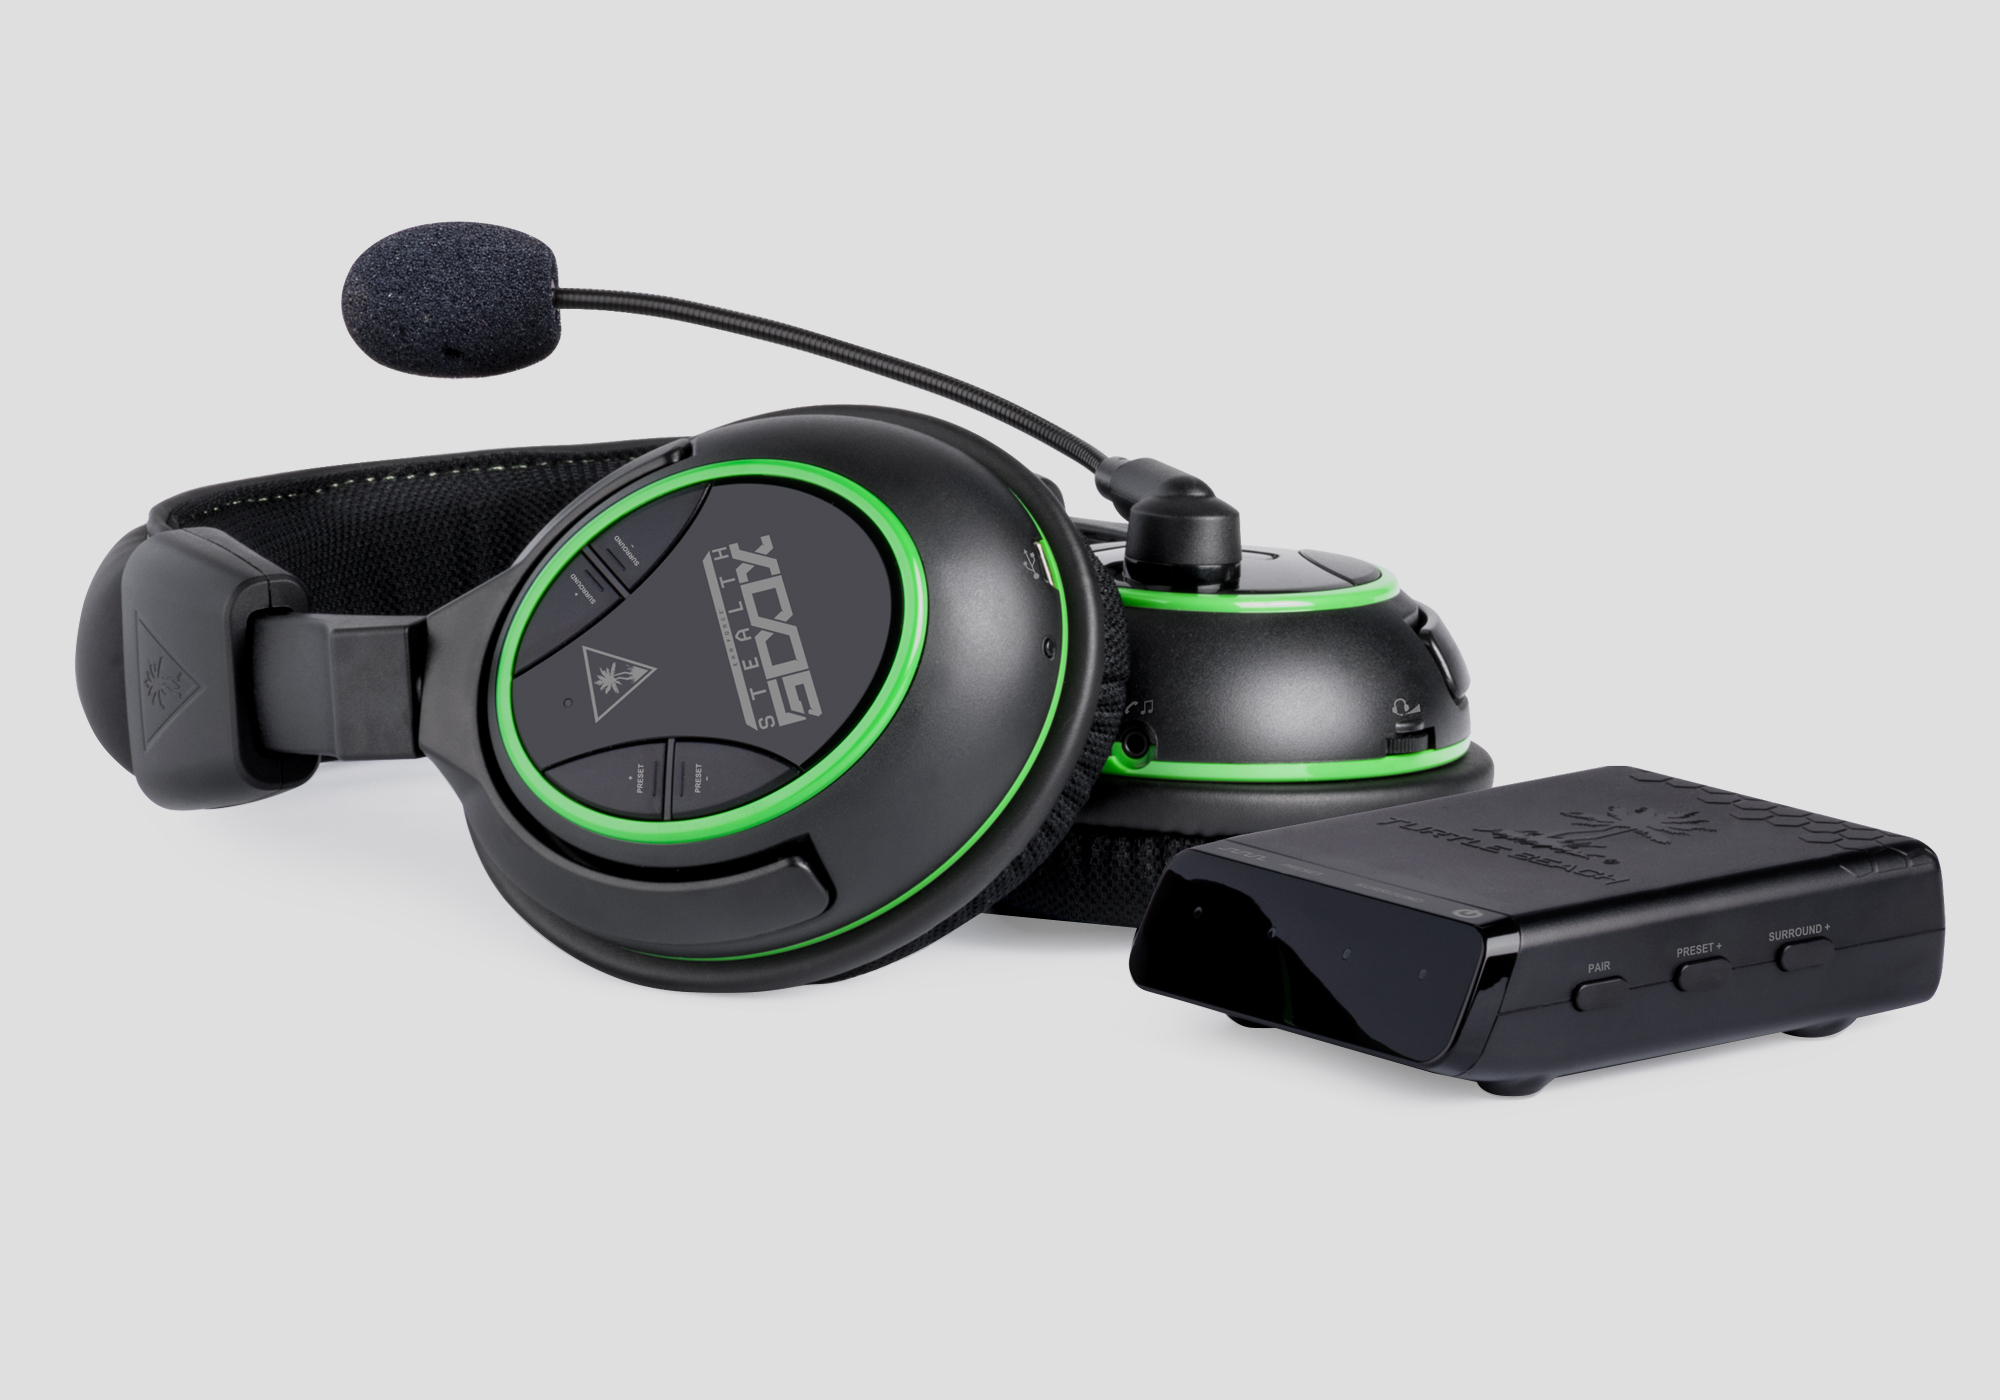 Will Stealth 500x work on Xbox Series S or X? : TurtleBeach